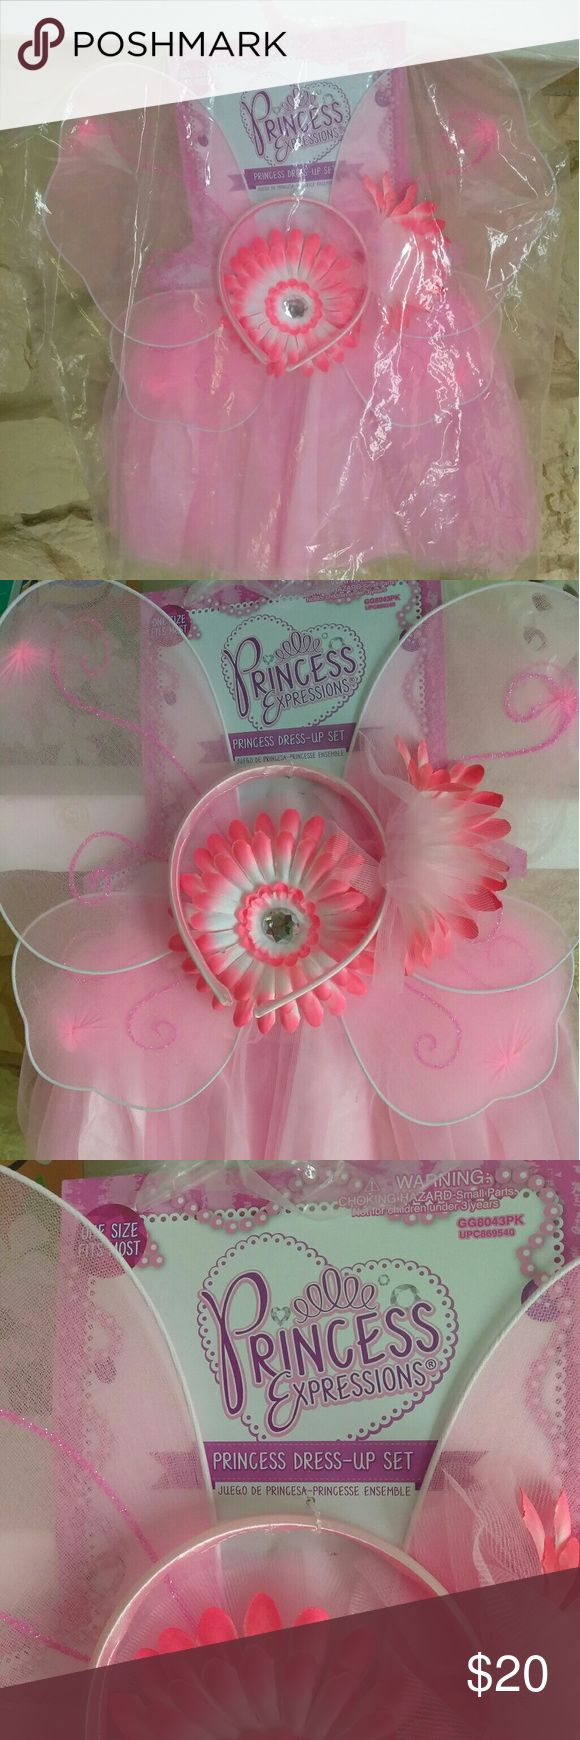 NWT Princess Dress Up Set NWT Princess Dress Up Set. Comes with Pink Tutu with flower, Pink Wings, and Pink flower head band. Brand New never been worn.   One size fits most. See picture with size description.  Can be used as a Halloween Costume. Comes with free set of dress up ballerina shoes.   Tutu Material: 100% Polyester Princess Expression Costumes Dance